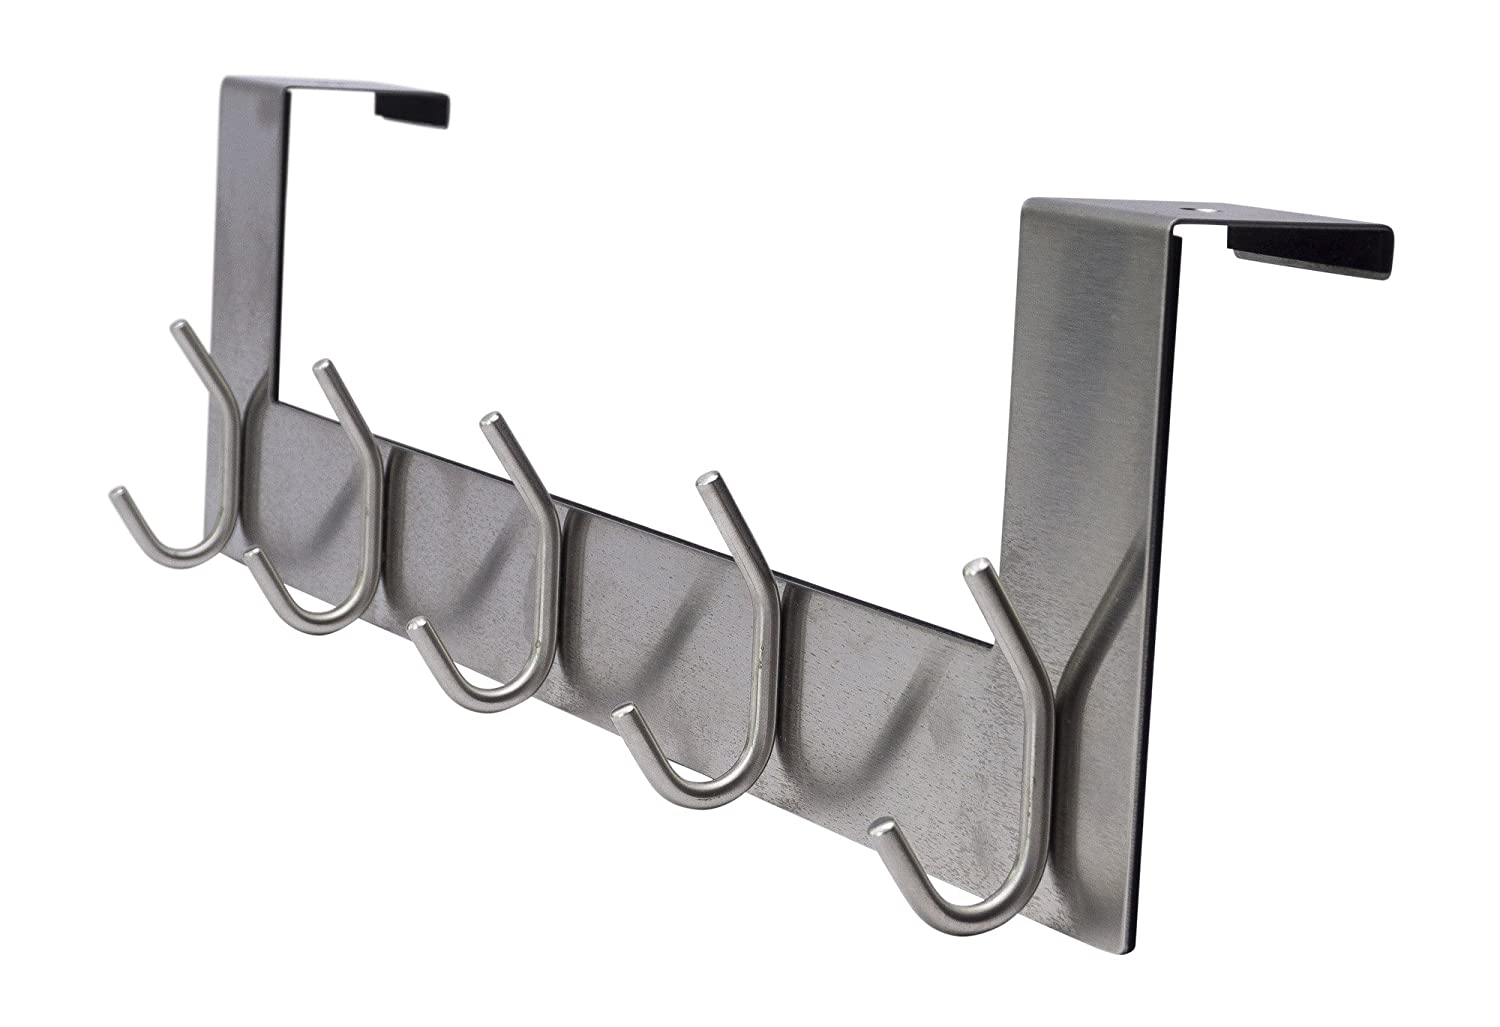 """Pro Chef Kitchen Tools Over The Door Hook - 5 Coat Hooks - 15.5 Inches Wide and Fits Doors up to 1.5"""" Thick - No Drill Towel Rack for Bathroom Storage Closet - Behind The Door Organizer Clothes Rack"""